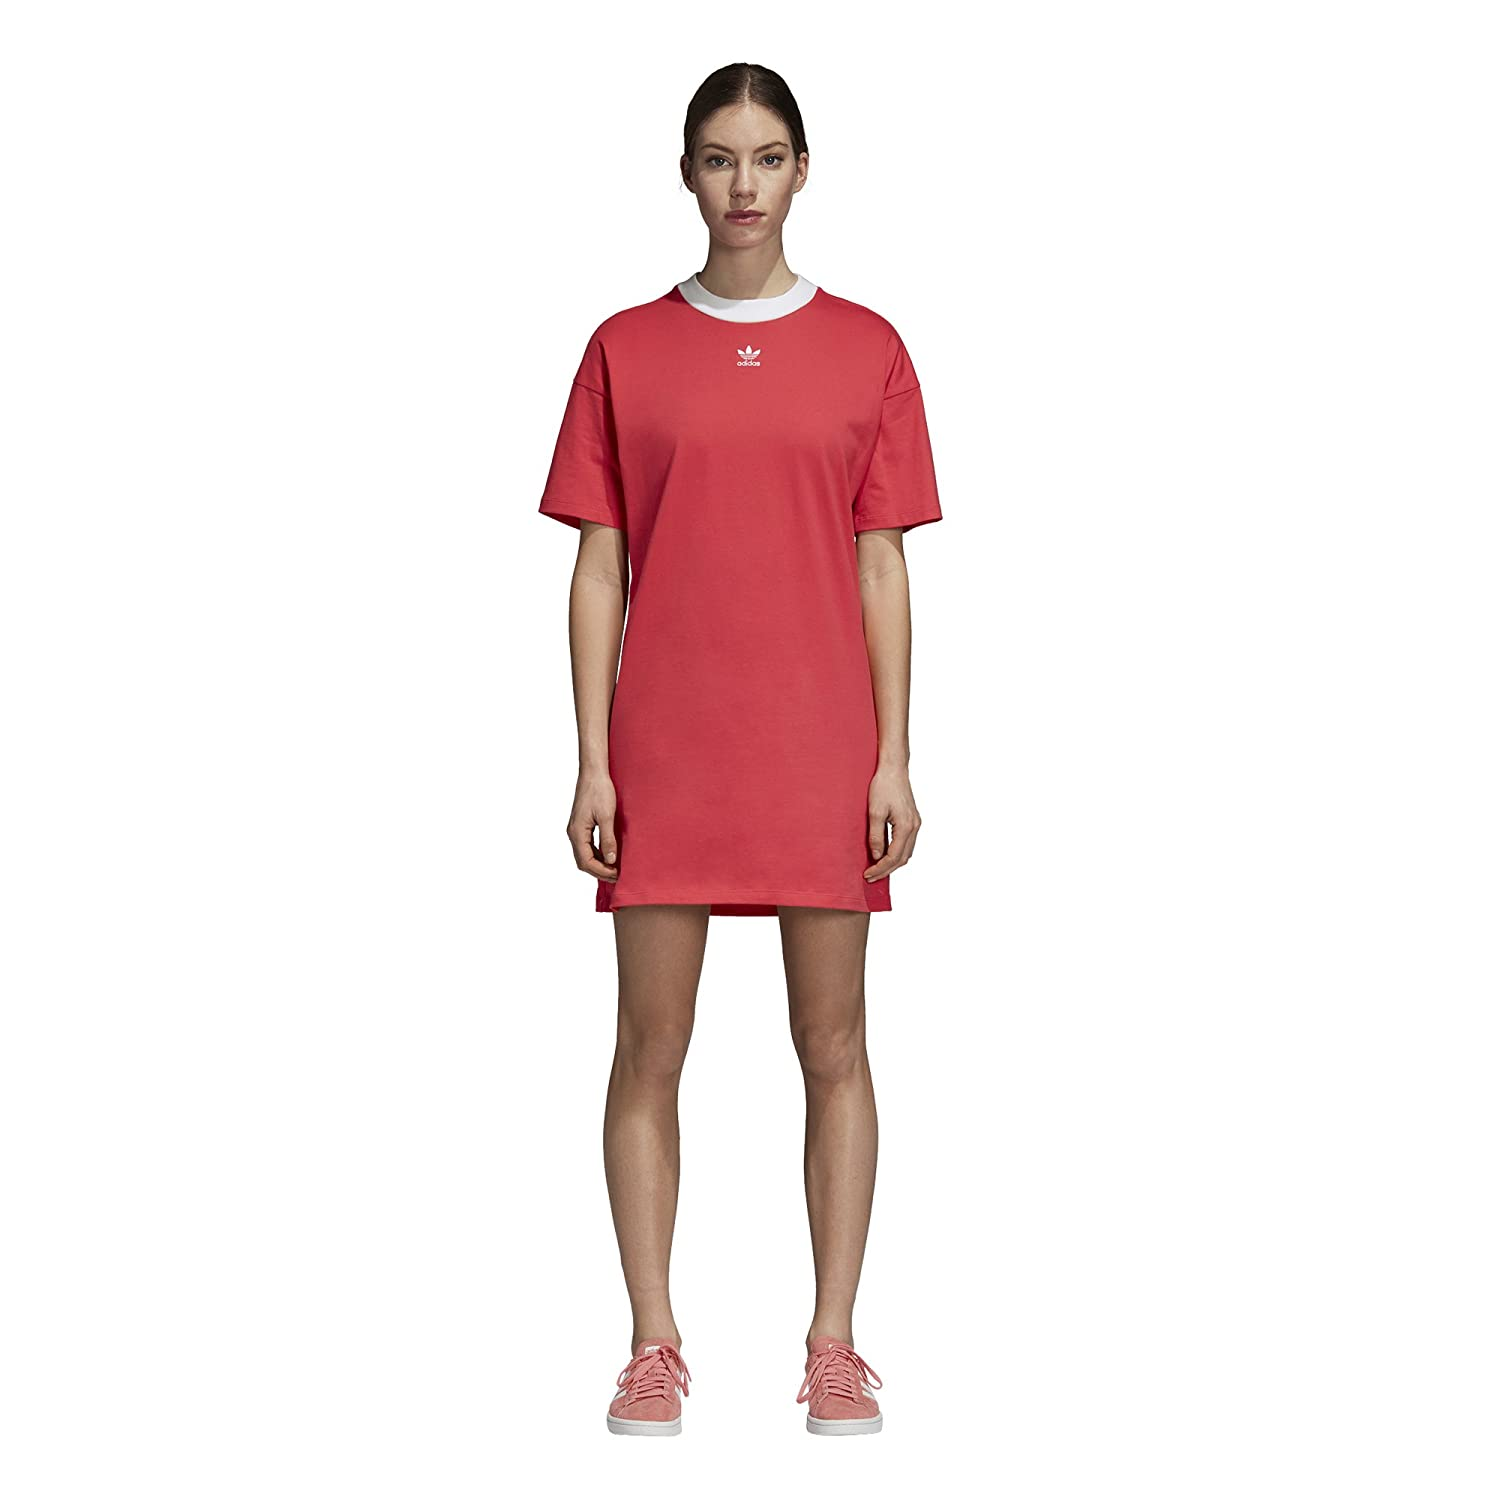 adidas Originals Women's Trefoil Dress